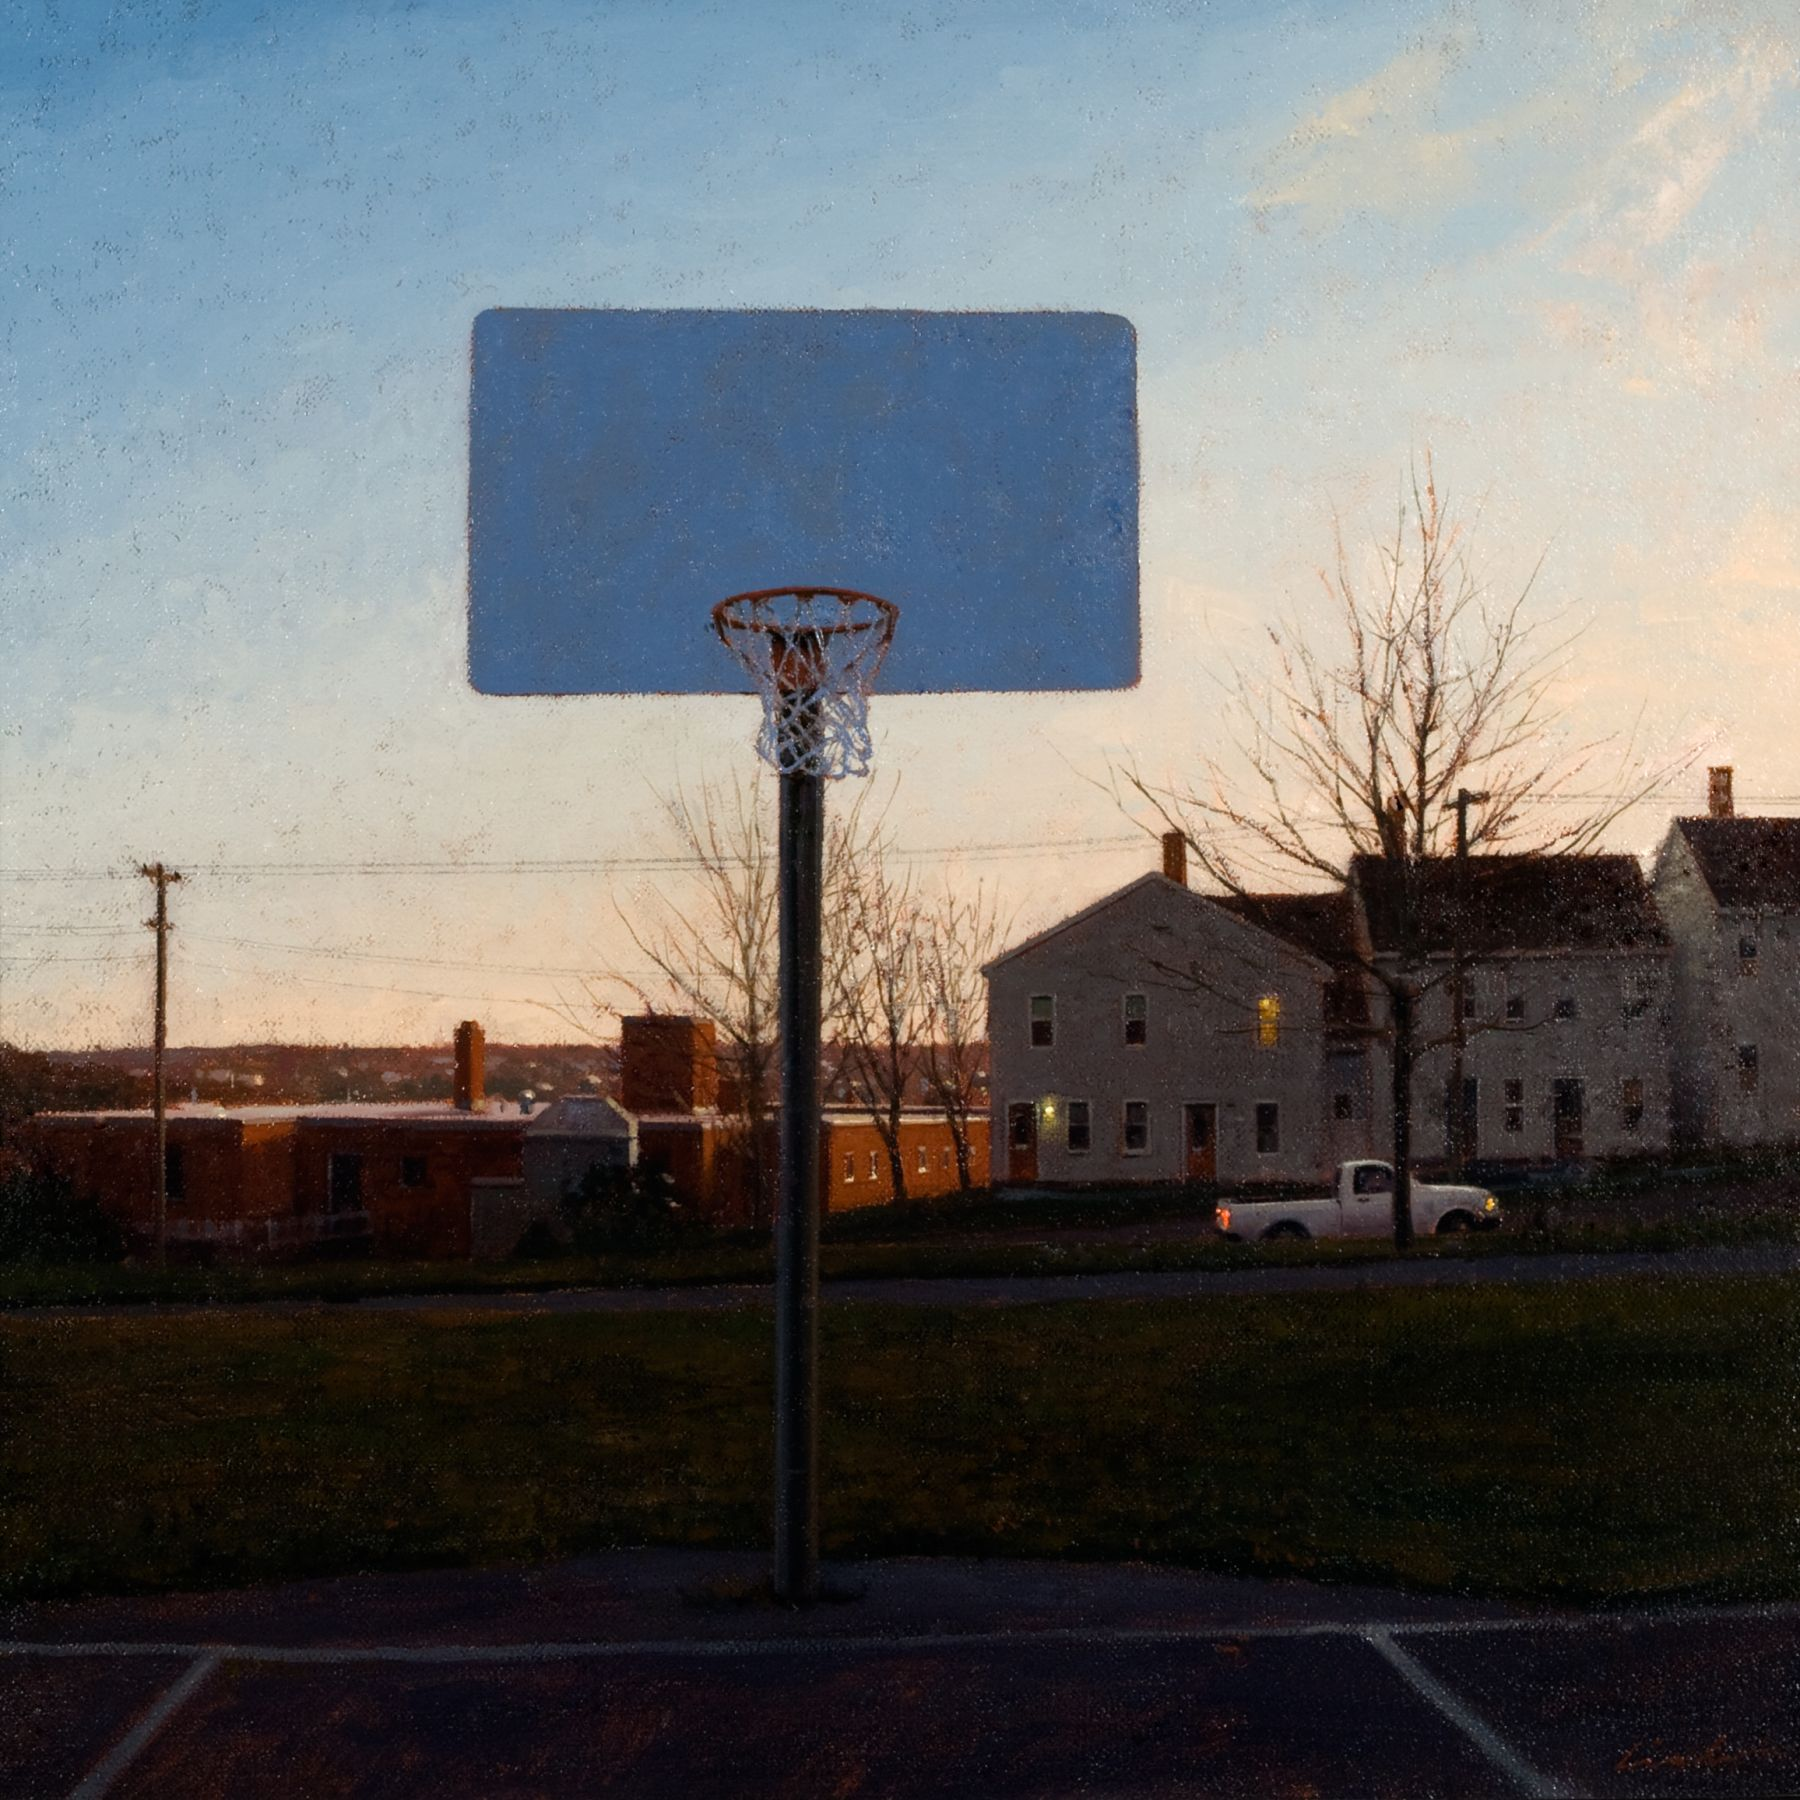 Linden Frederick, Hoops (SOLD), 2007, oil on panel, 12 1/4 x 12 1/4 inches